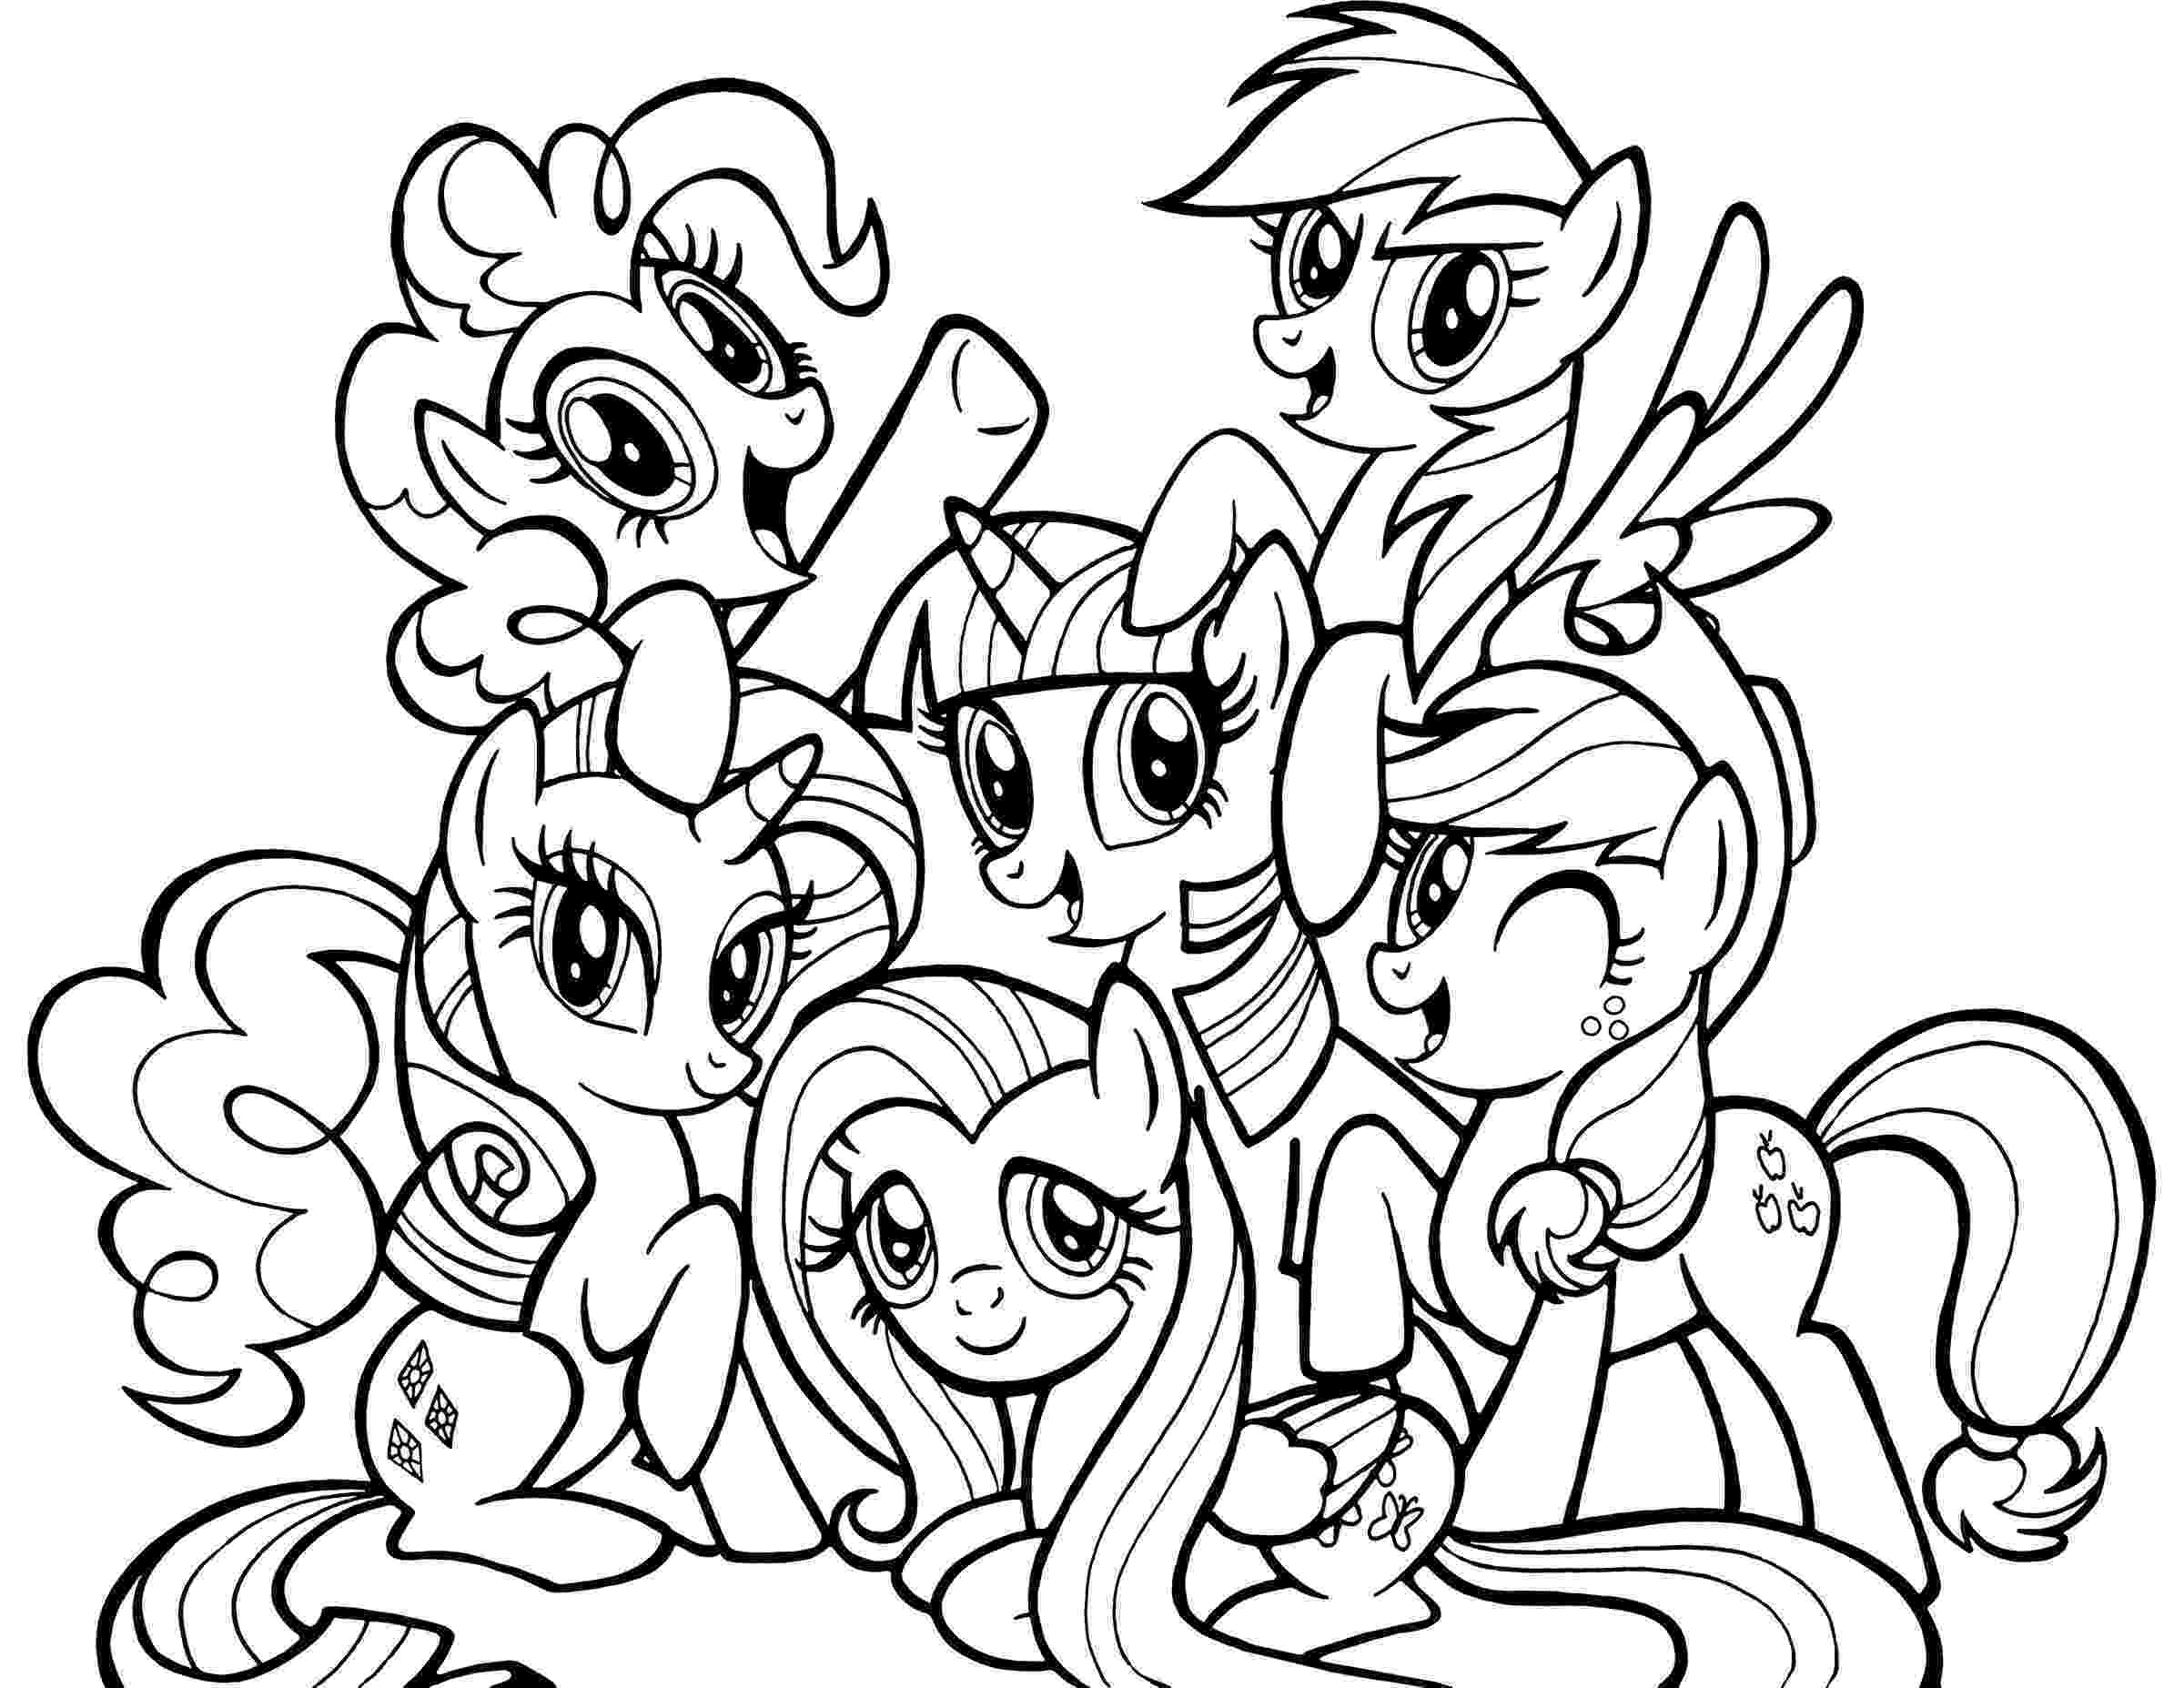 free my little pony coloring pages to print ponies from ponyville coloring pages free printable to pages pony print coloring free my little